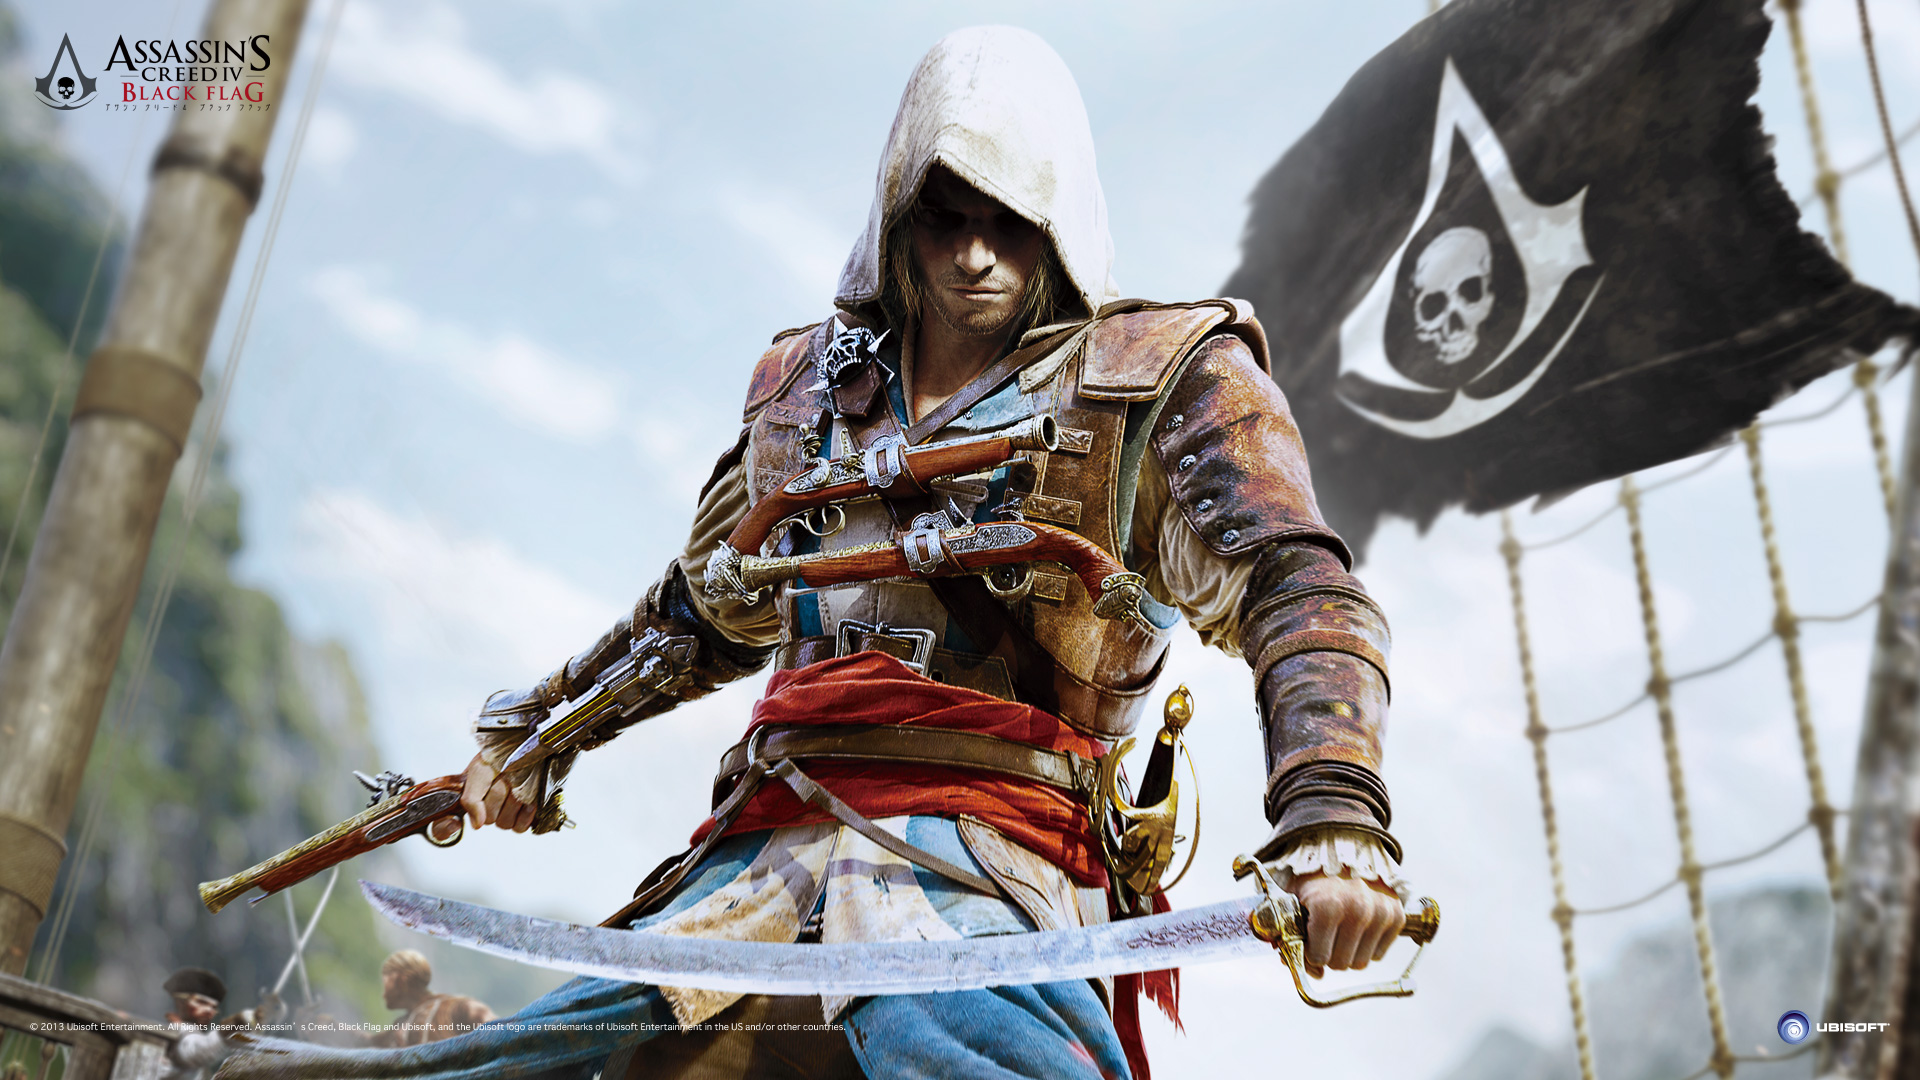 Assassins creed 4 black flag iv 1920 voltagebd Image collections